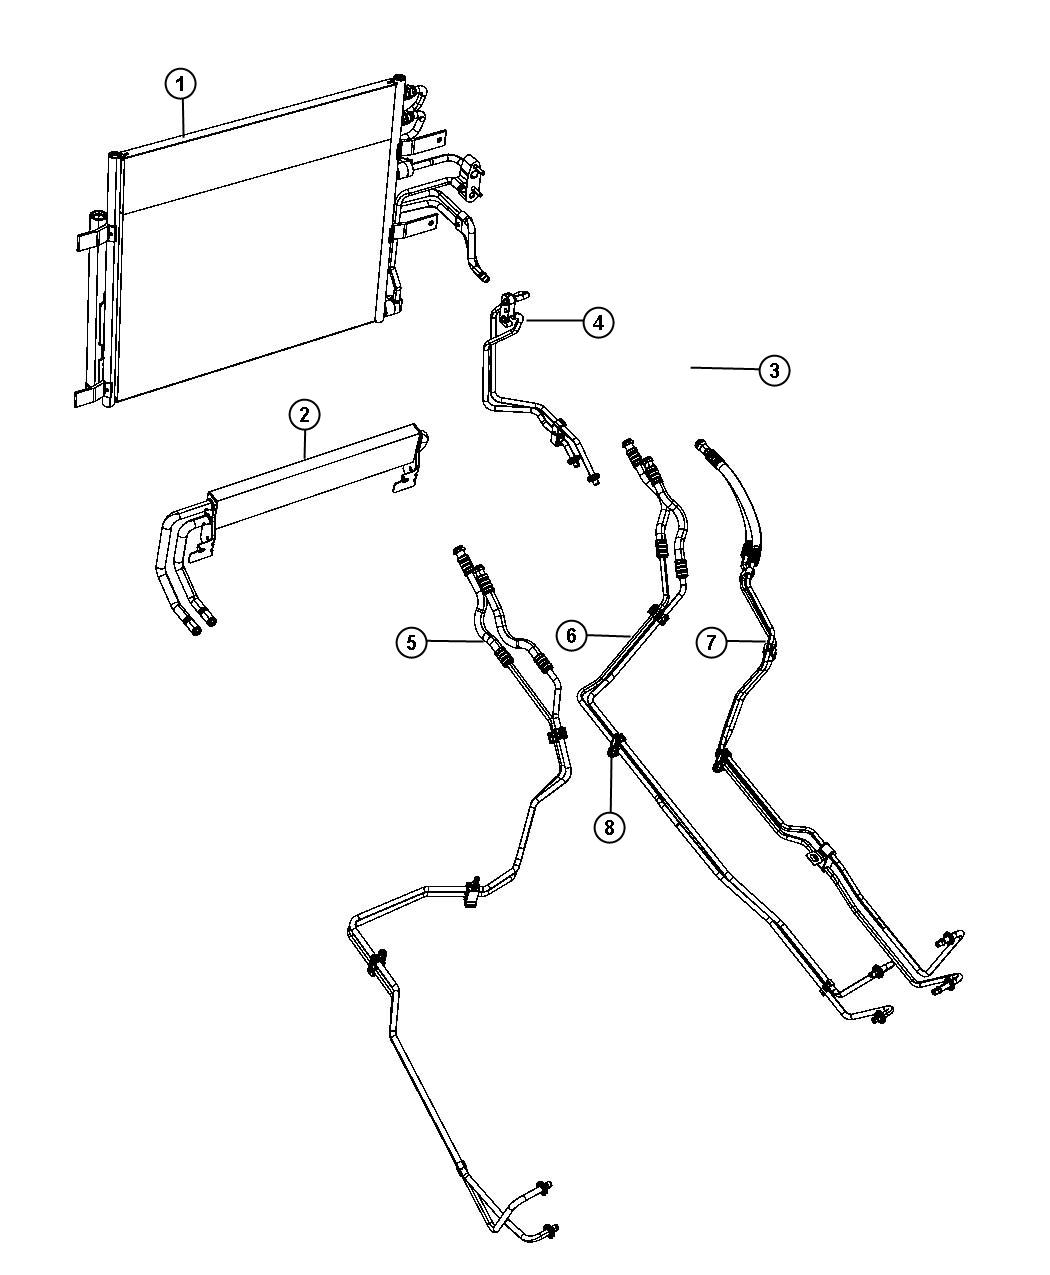 Search on 2004 Jeep Grand Cherokee Cooling System Diagram